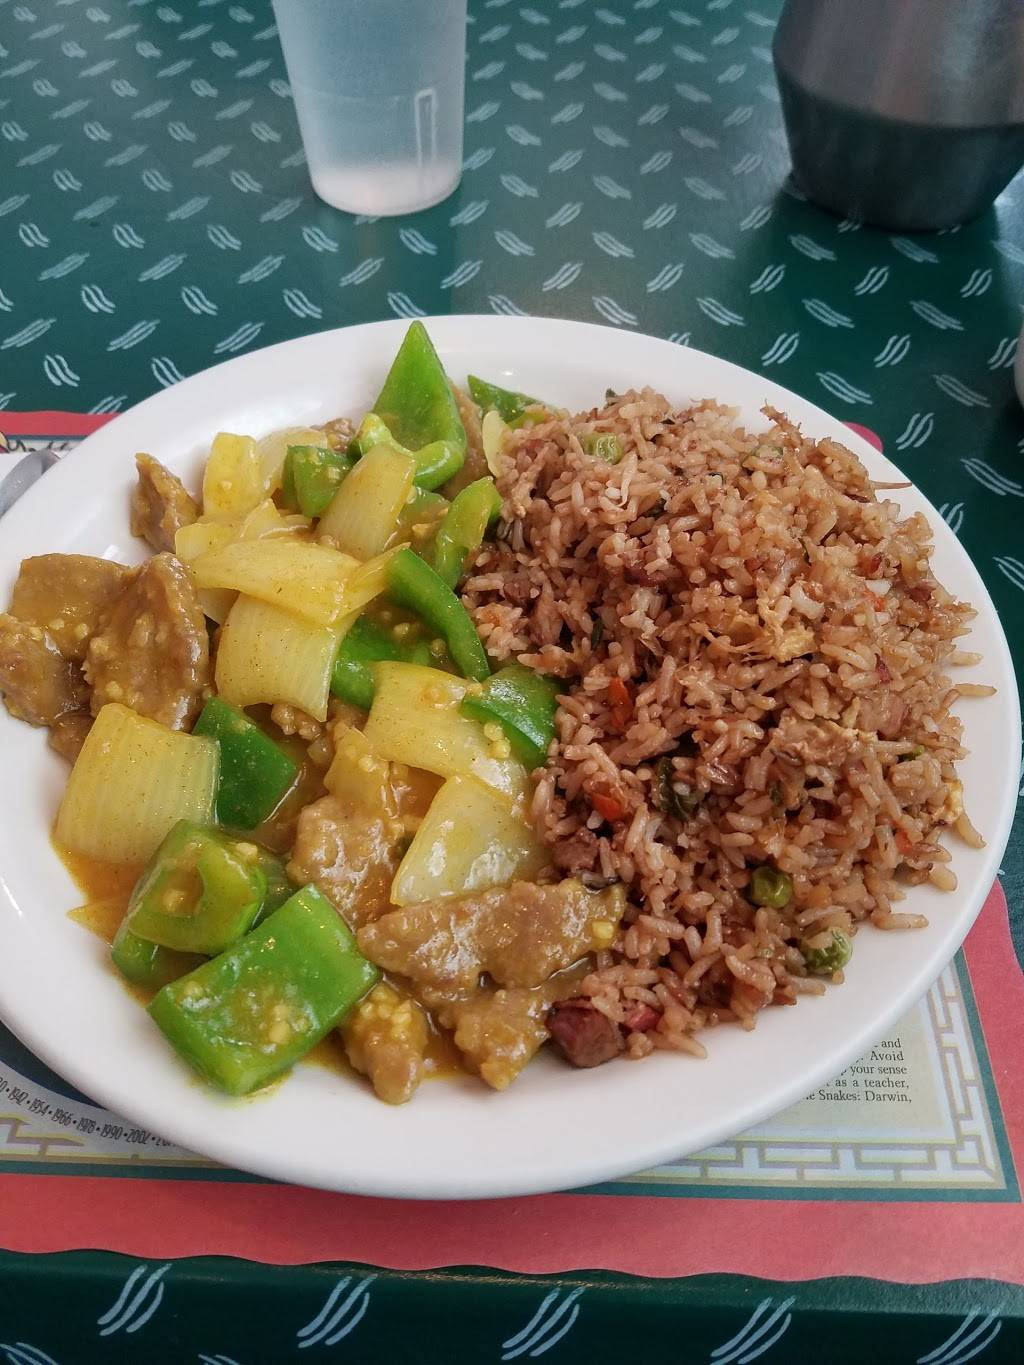 Golden Bowl Restaurant   meal takeaway   2800, 6313 Fairview Ave, Westmont, IL 60559, USA   6308526688 OR +1 630-852-6688